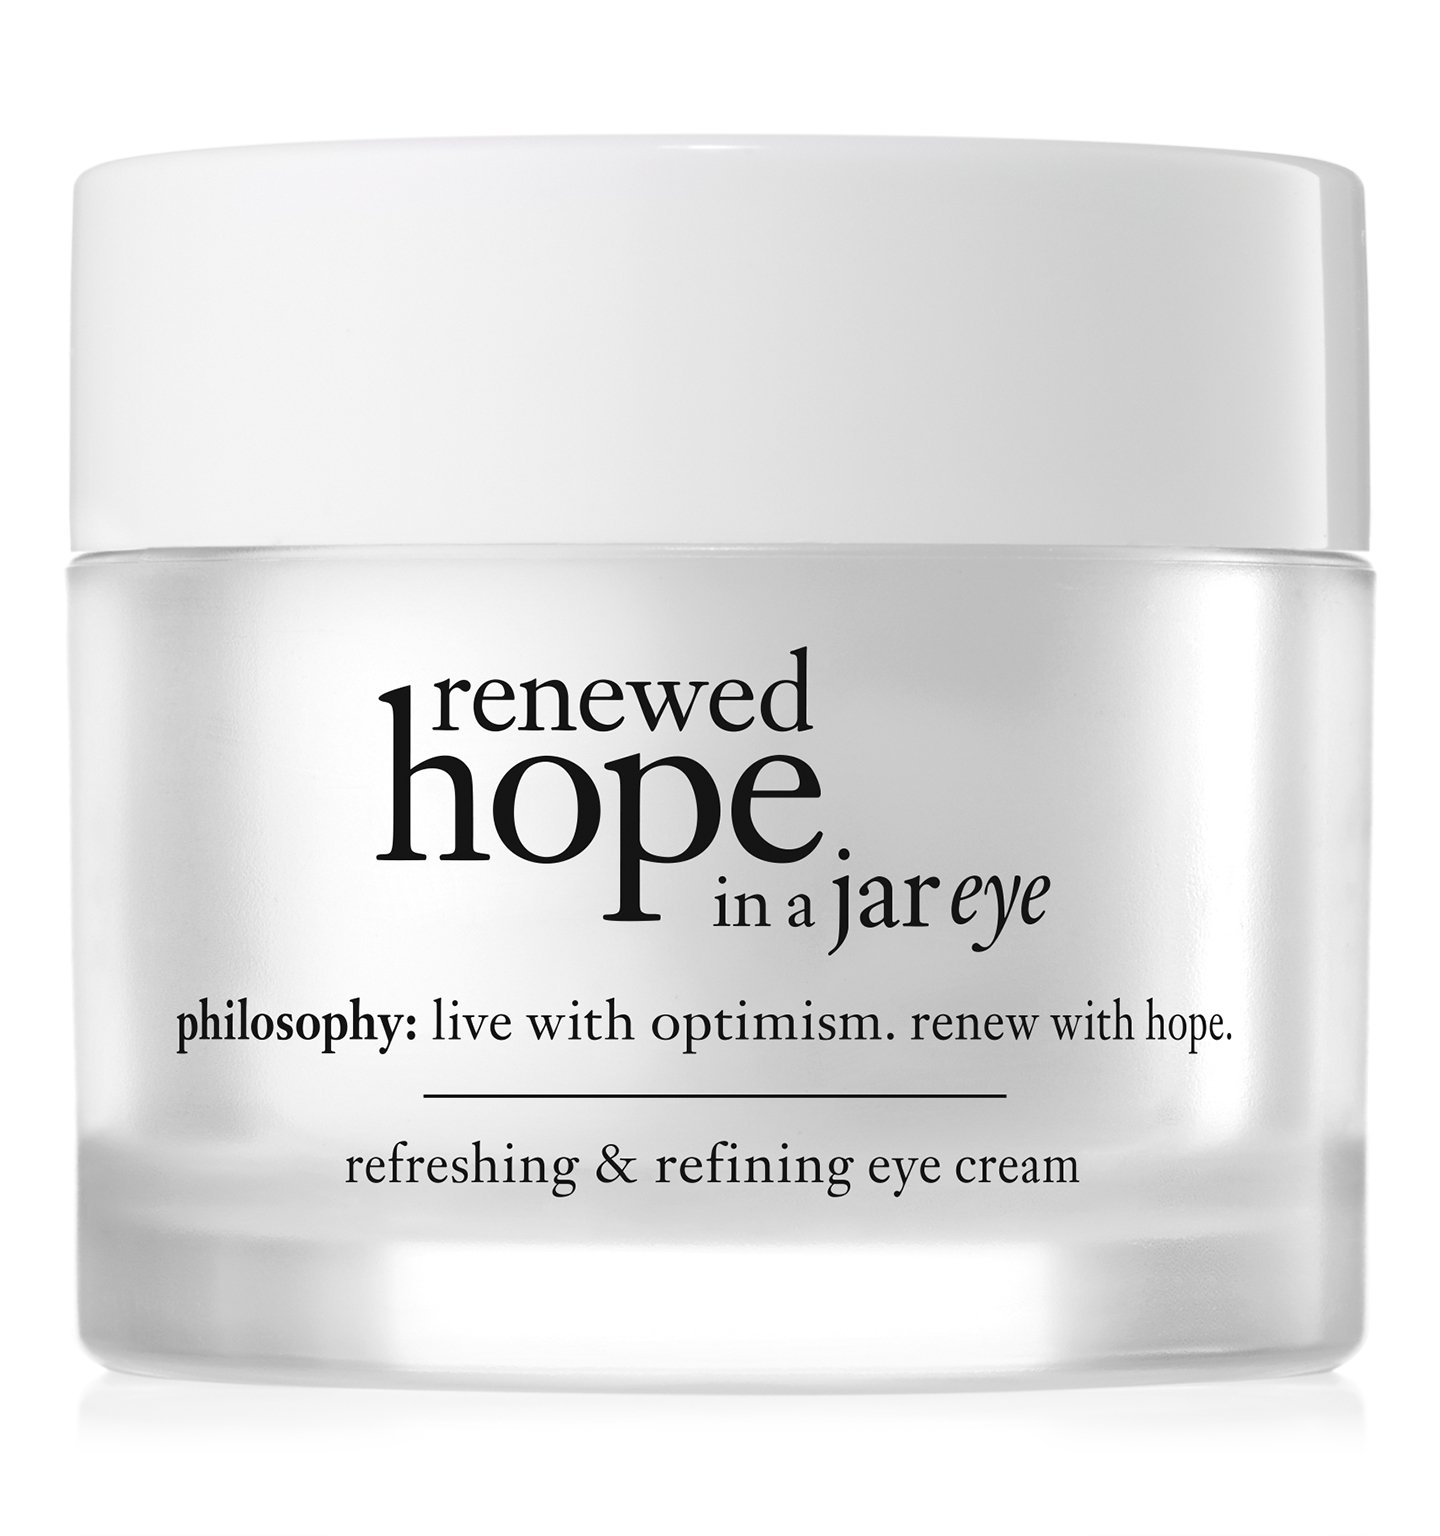 philosophy, renewed hope in a jar eye